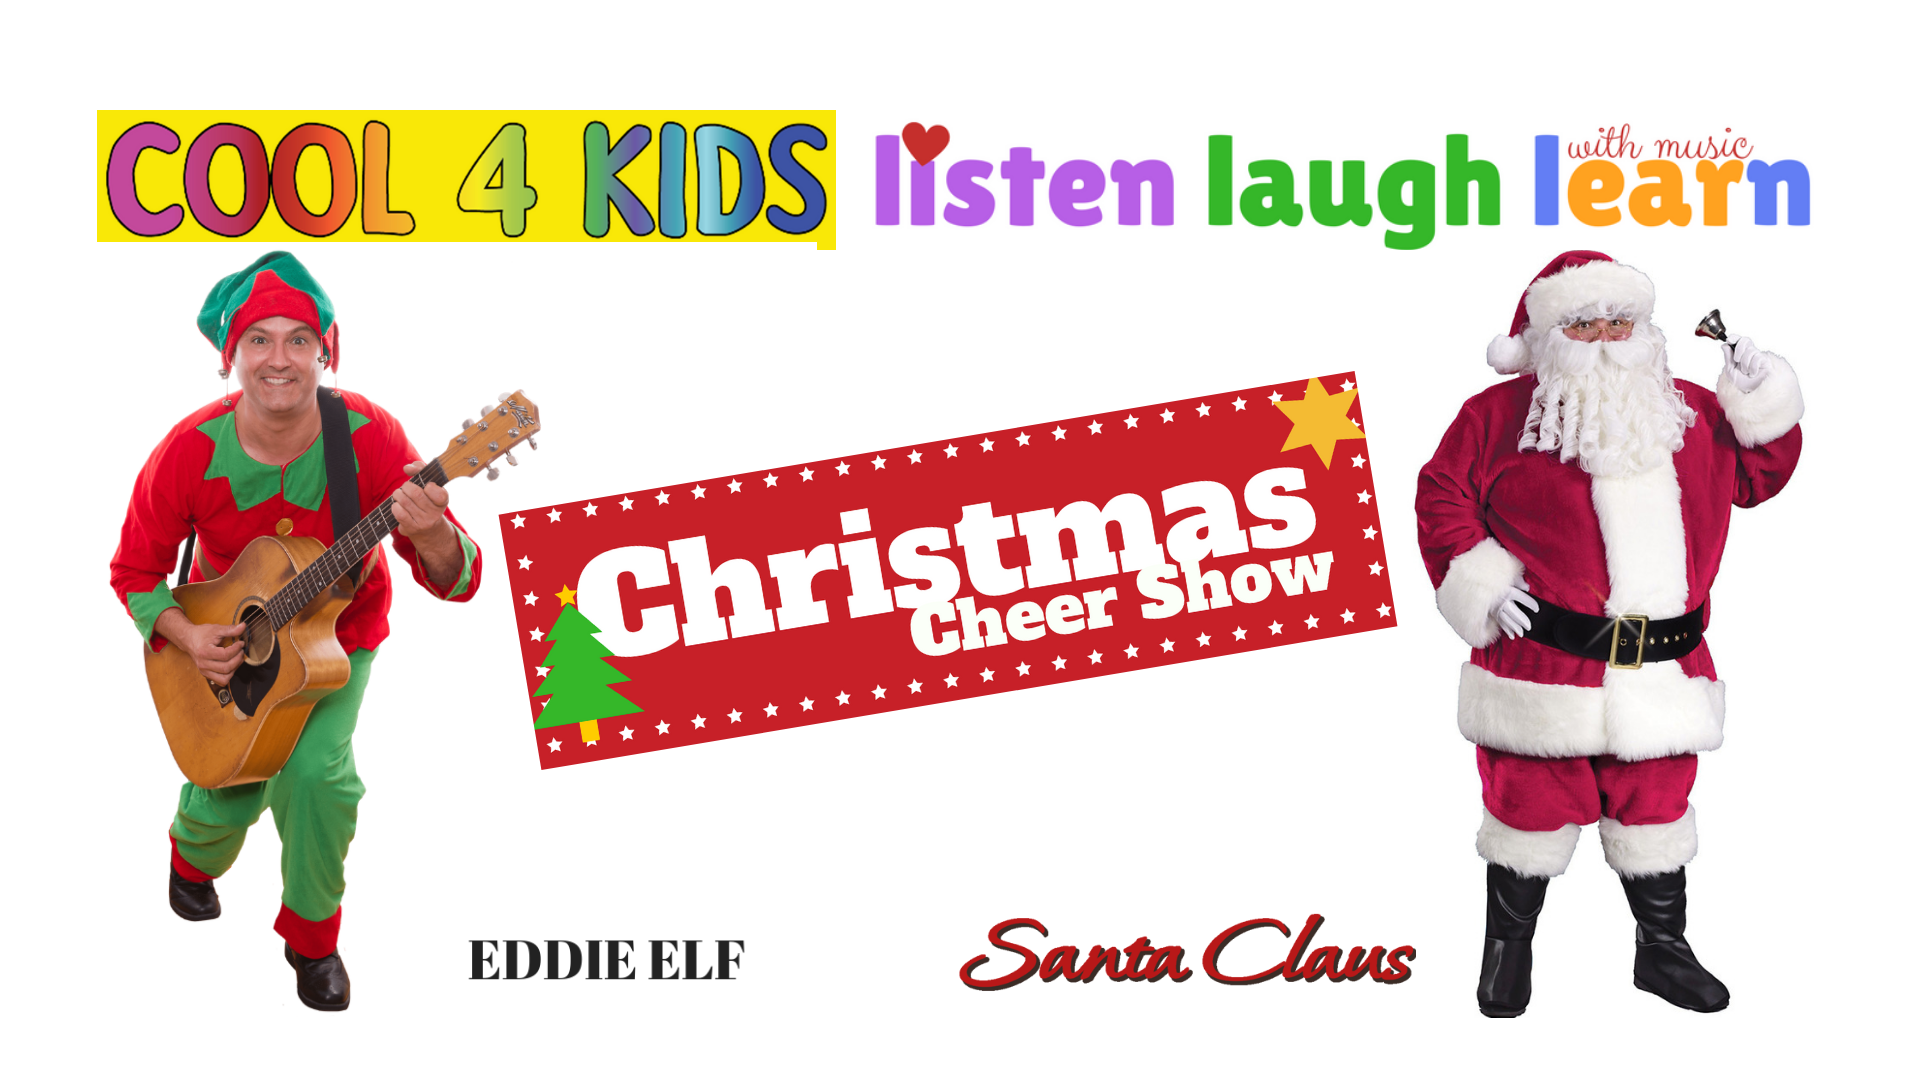 Christmas Party Time Images.Christmas Party Time Is Here Cool 4 Kids